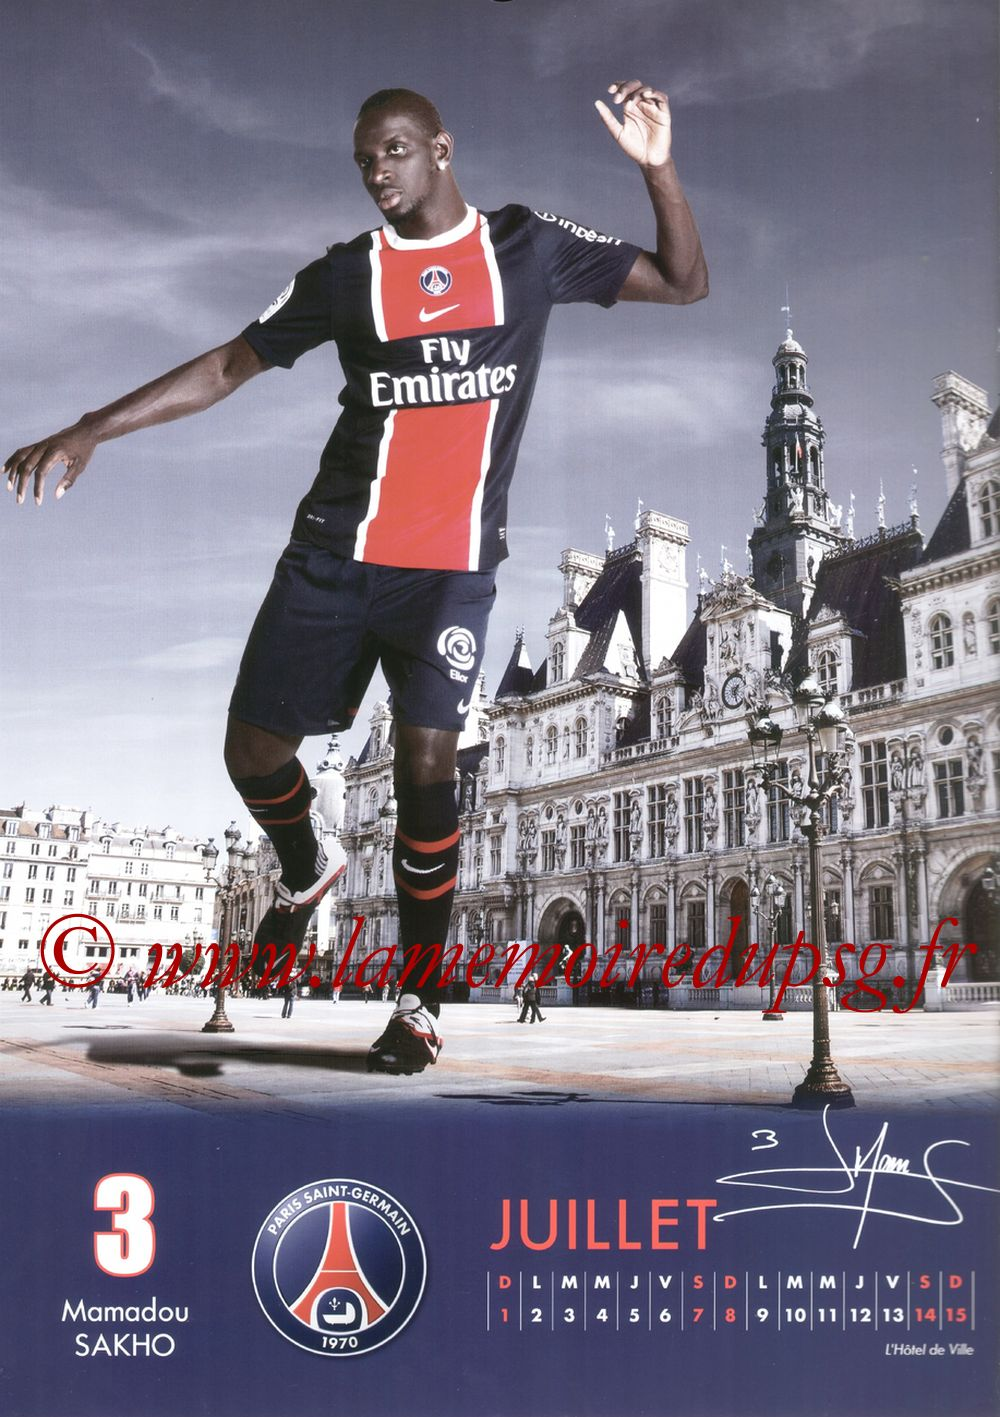 Calendrier PSG 2012 - Page 13 - Mamadou SAKHO